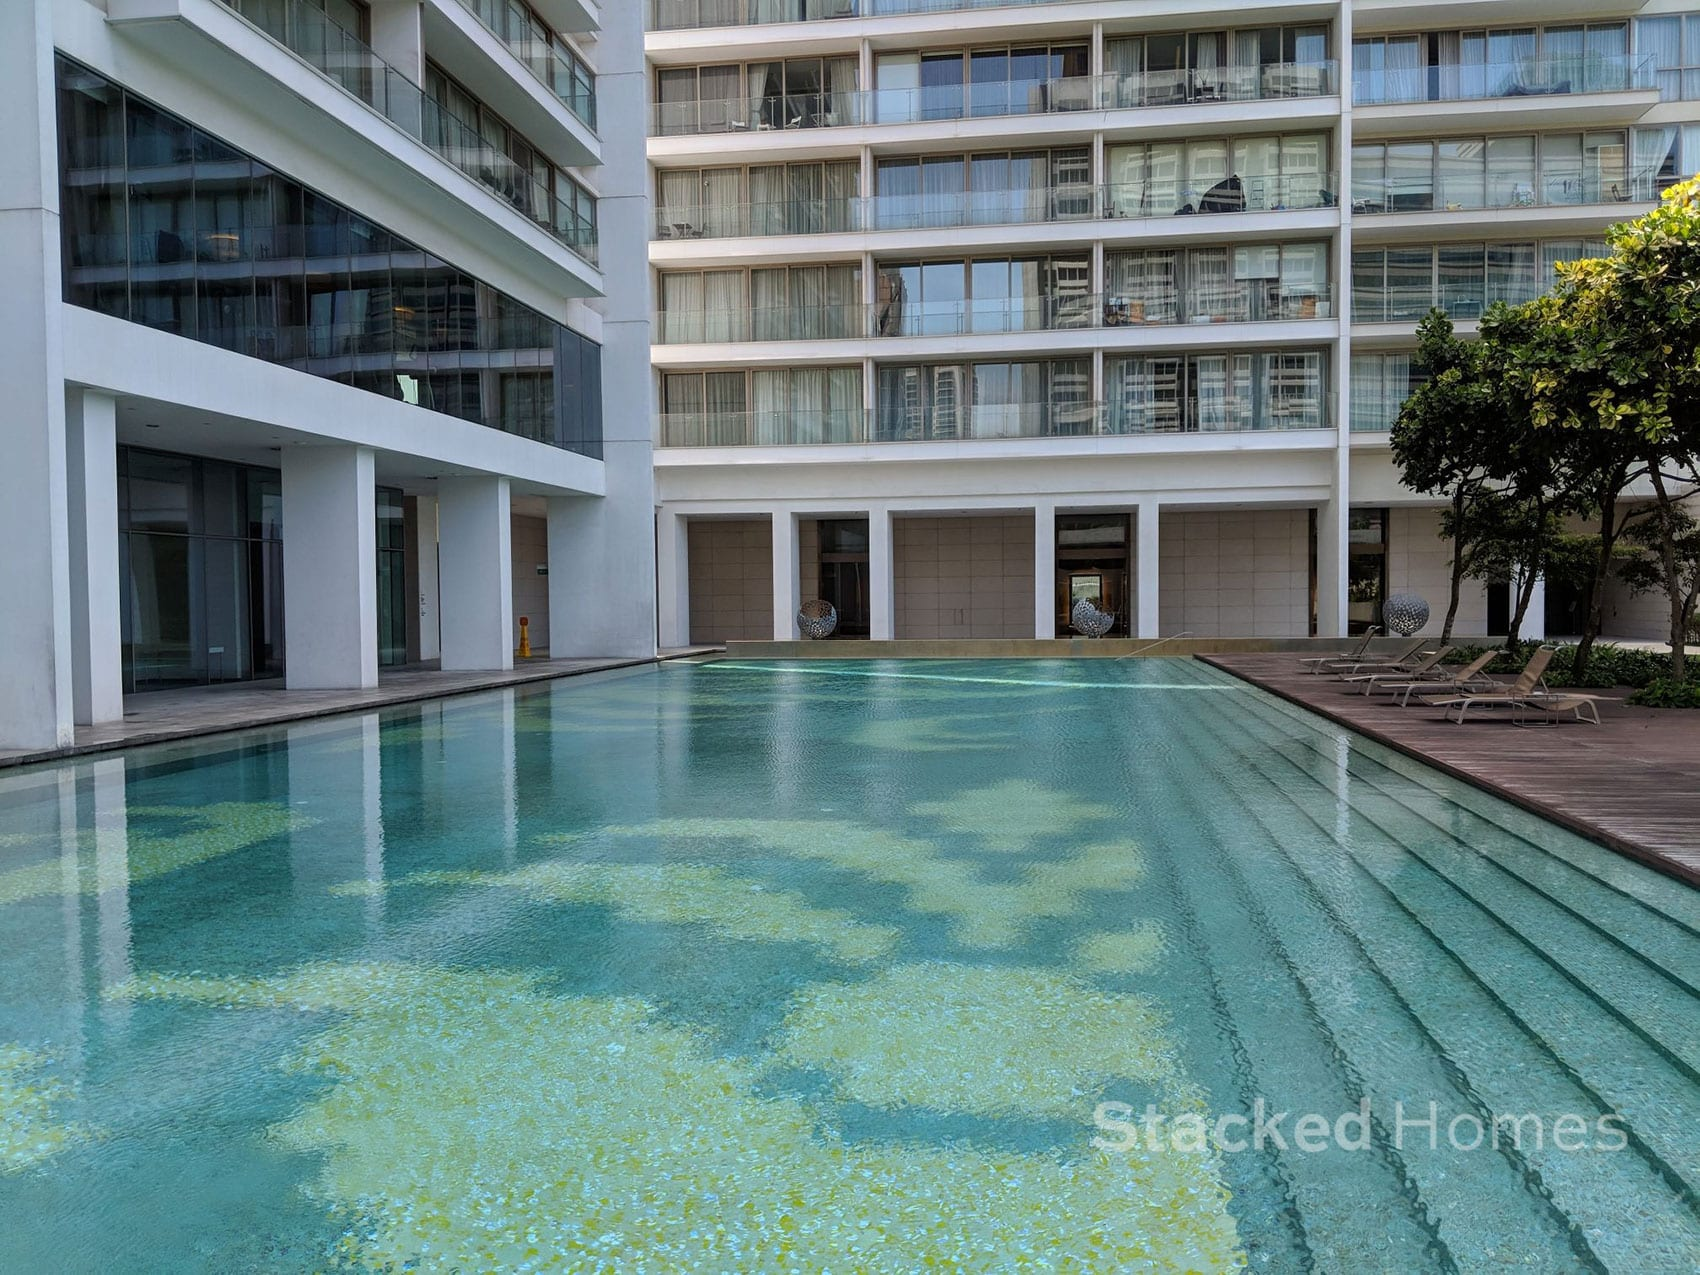 scotts square condo swimming pool